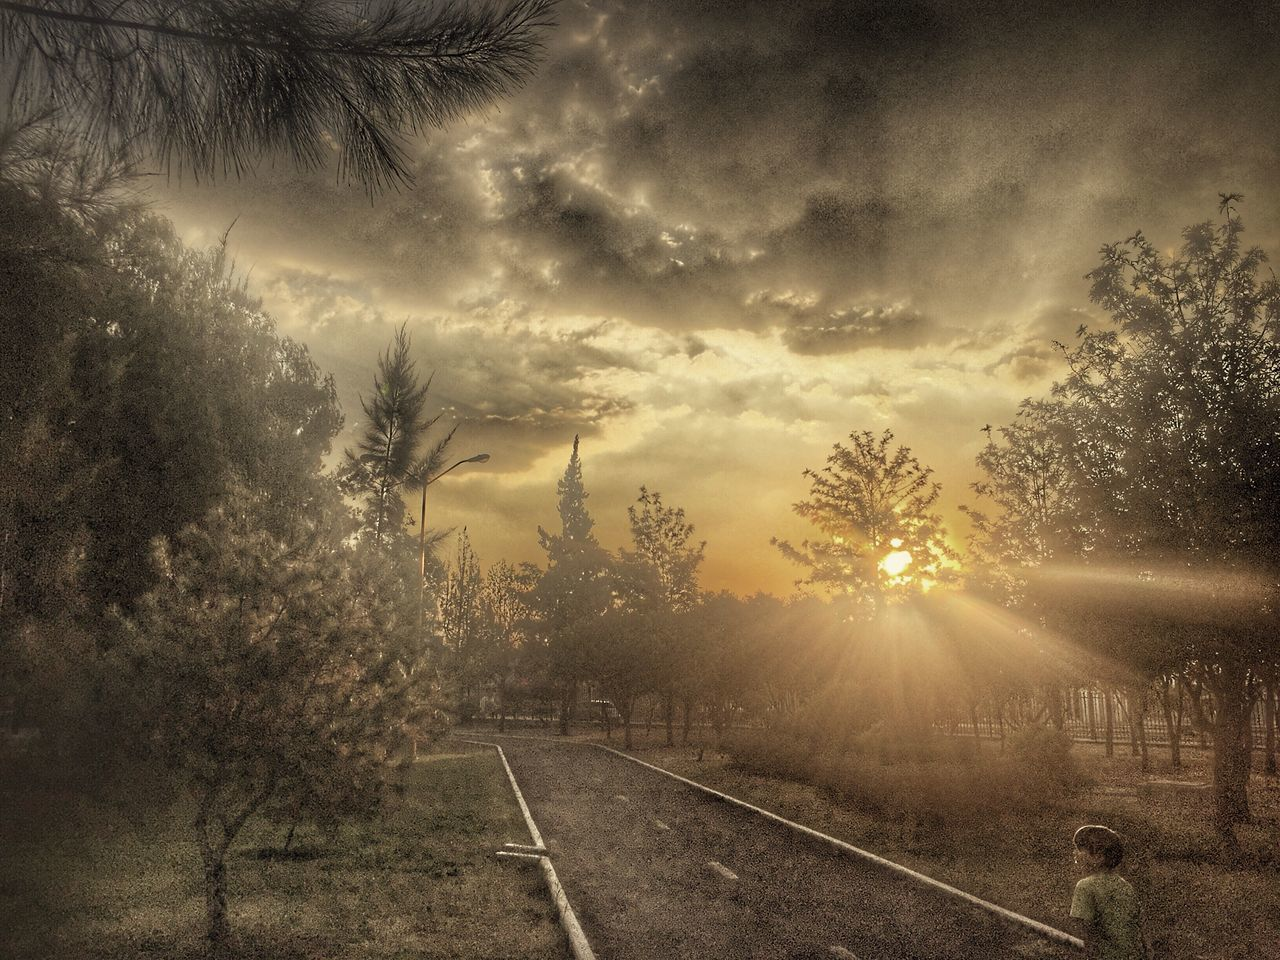 tree, sunset, nature, no people, sun, cloud - sky, tranquil scene, sky, transportation, scenics, the way forward, tranquility, beauty in nature, landscape, outdoors, sunlight, day